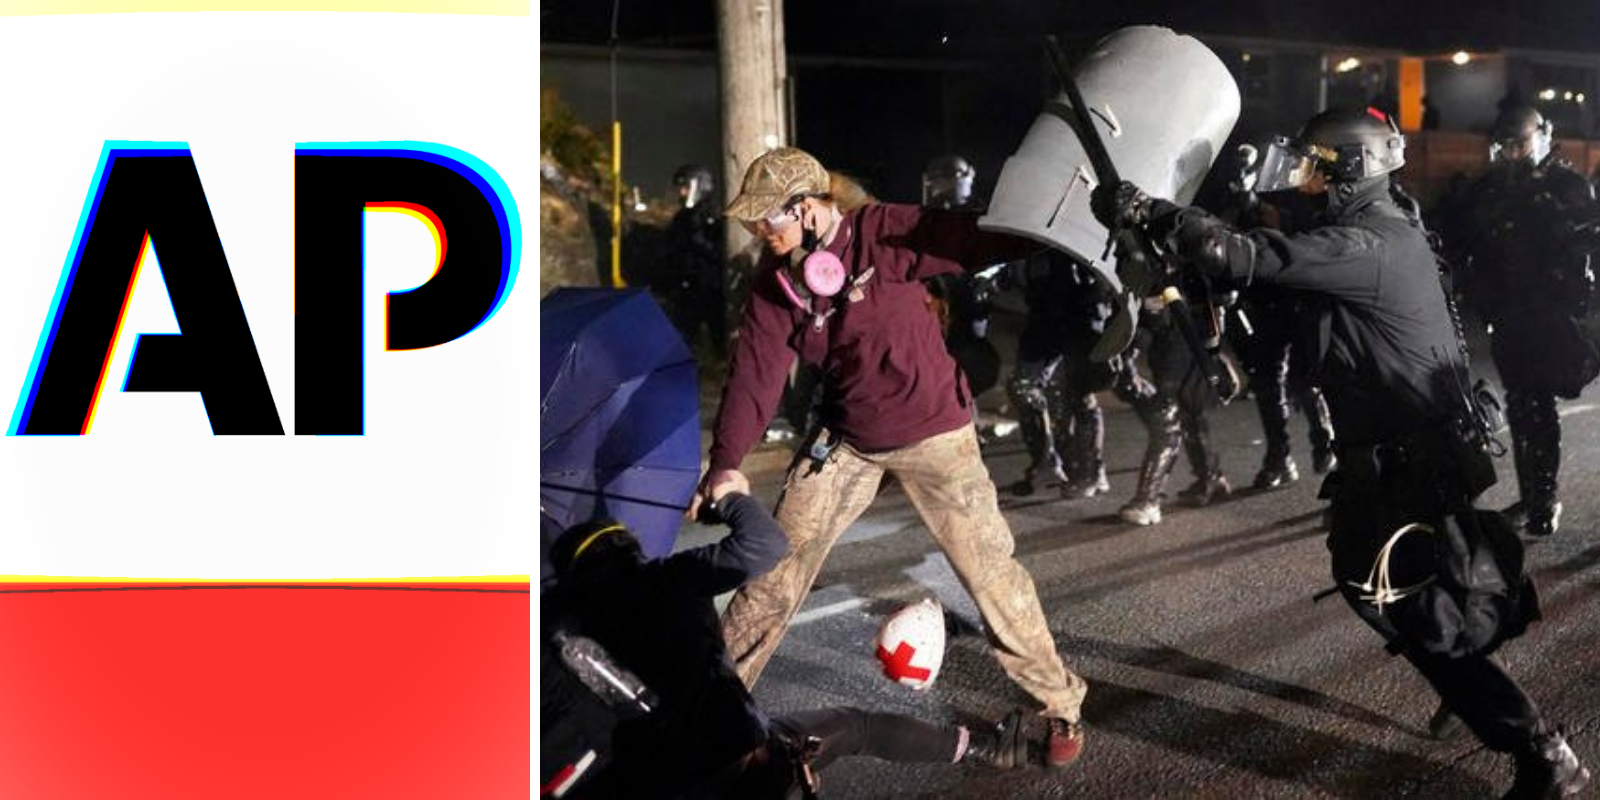 Associated Press issues erroneous 'fact check' saying there is 'no evidence' of Antifa, BLM violence